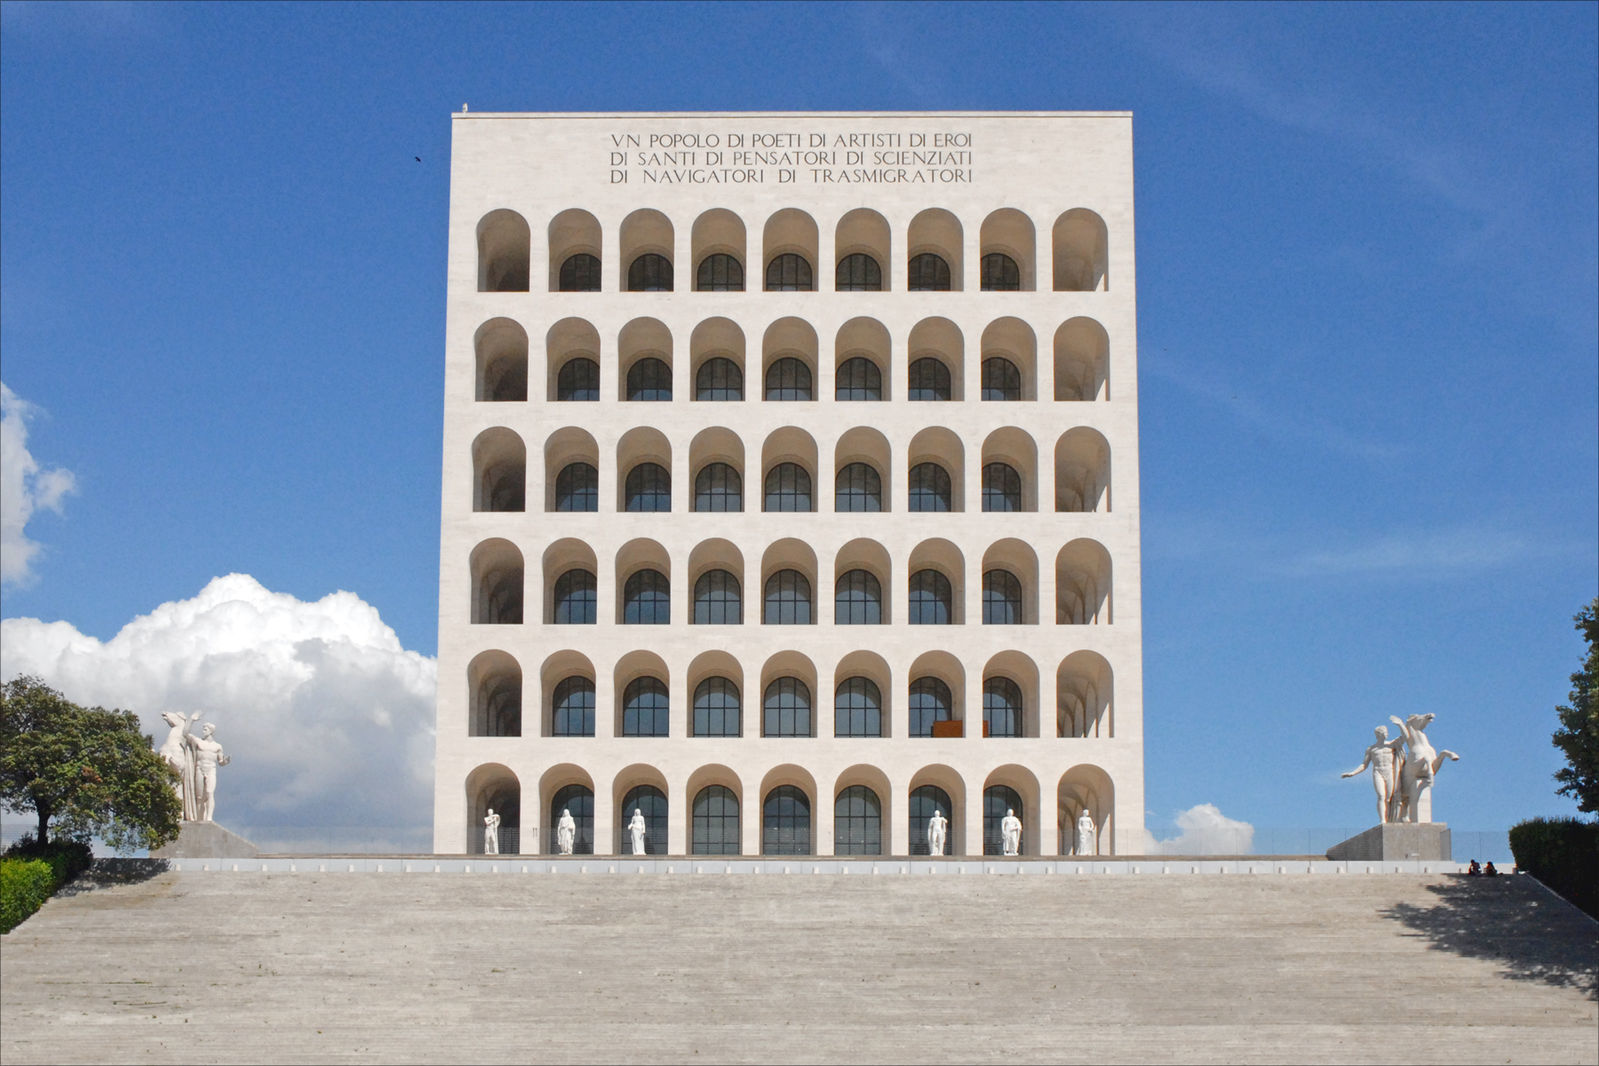 Check out our list of the most jawdroppingly beautiful buildings in Rome.